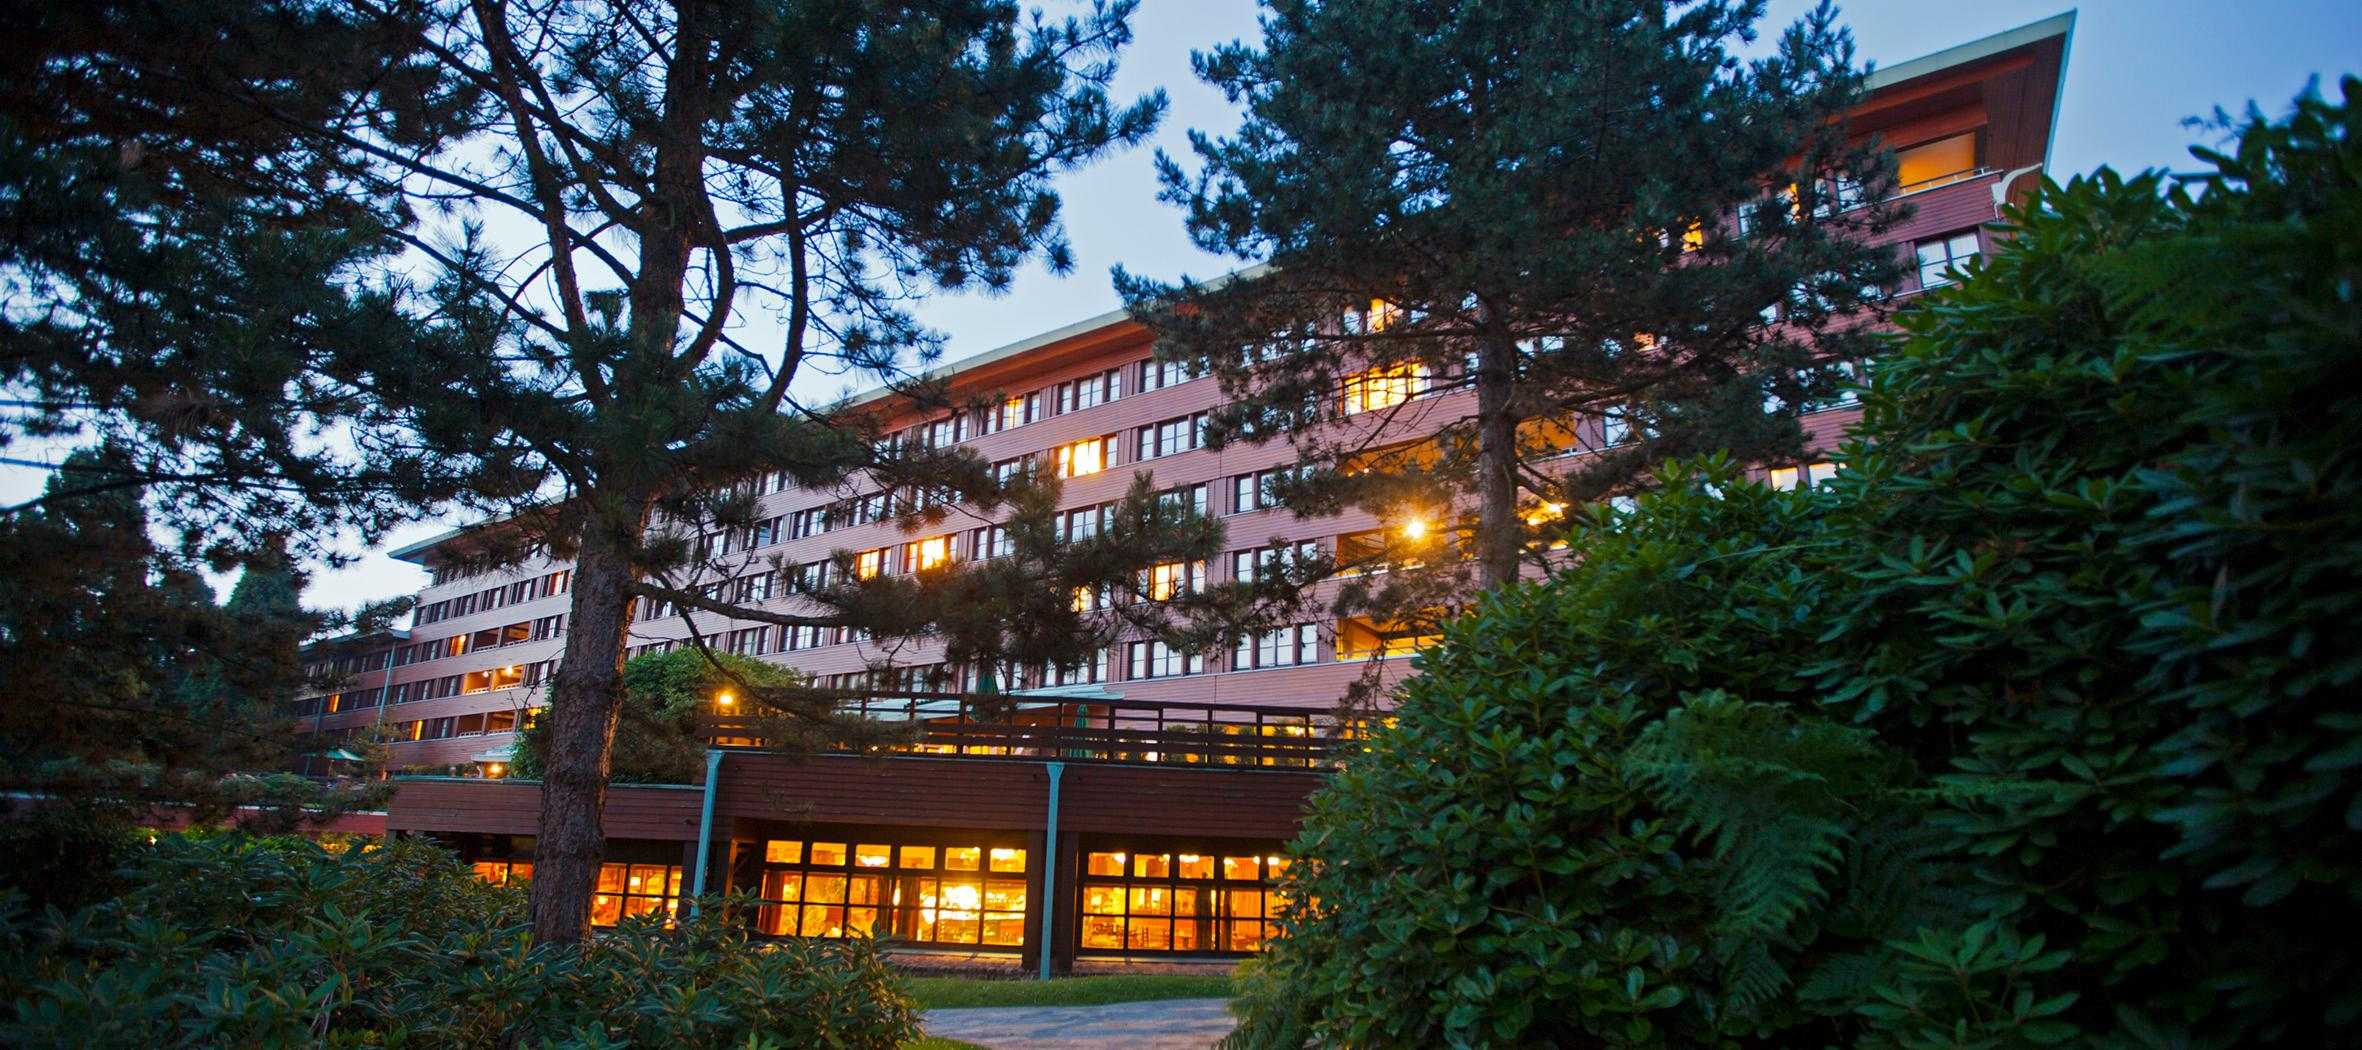 Sequoia Lodge Hotel in Disneyland Paris